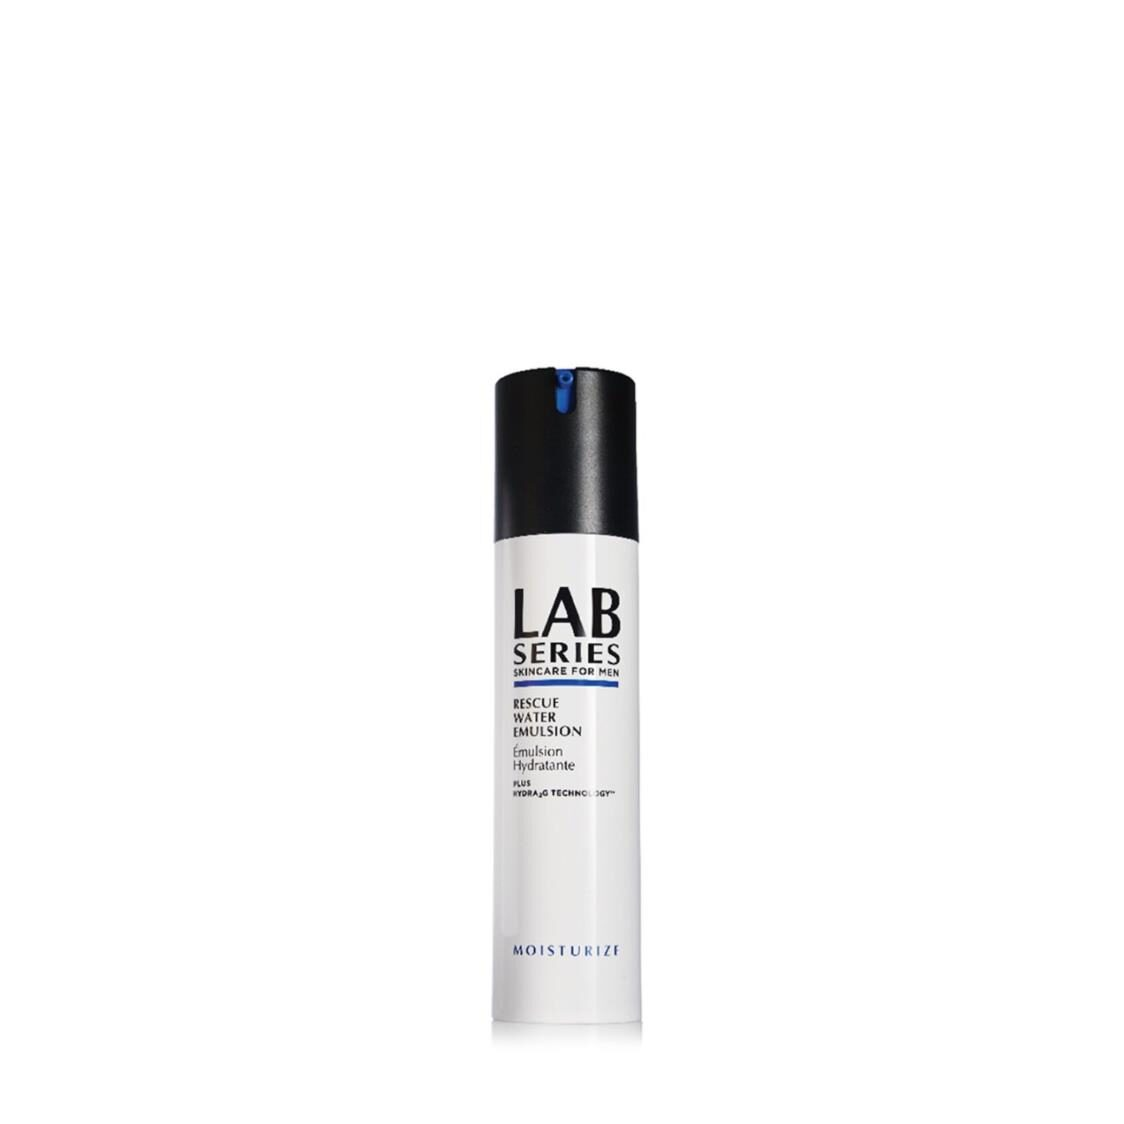 Lab Series Rescue Water Emulsion 100ml